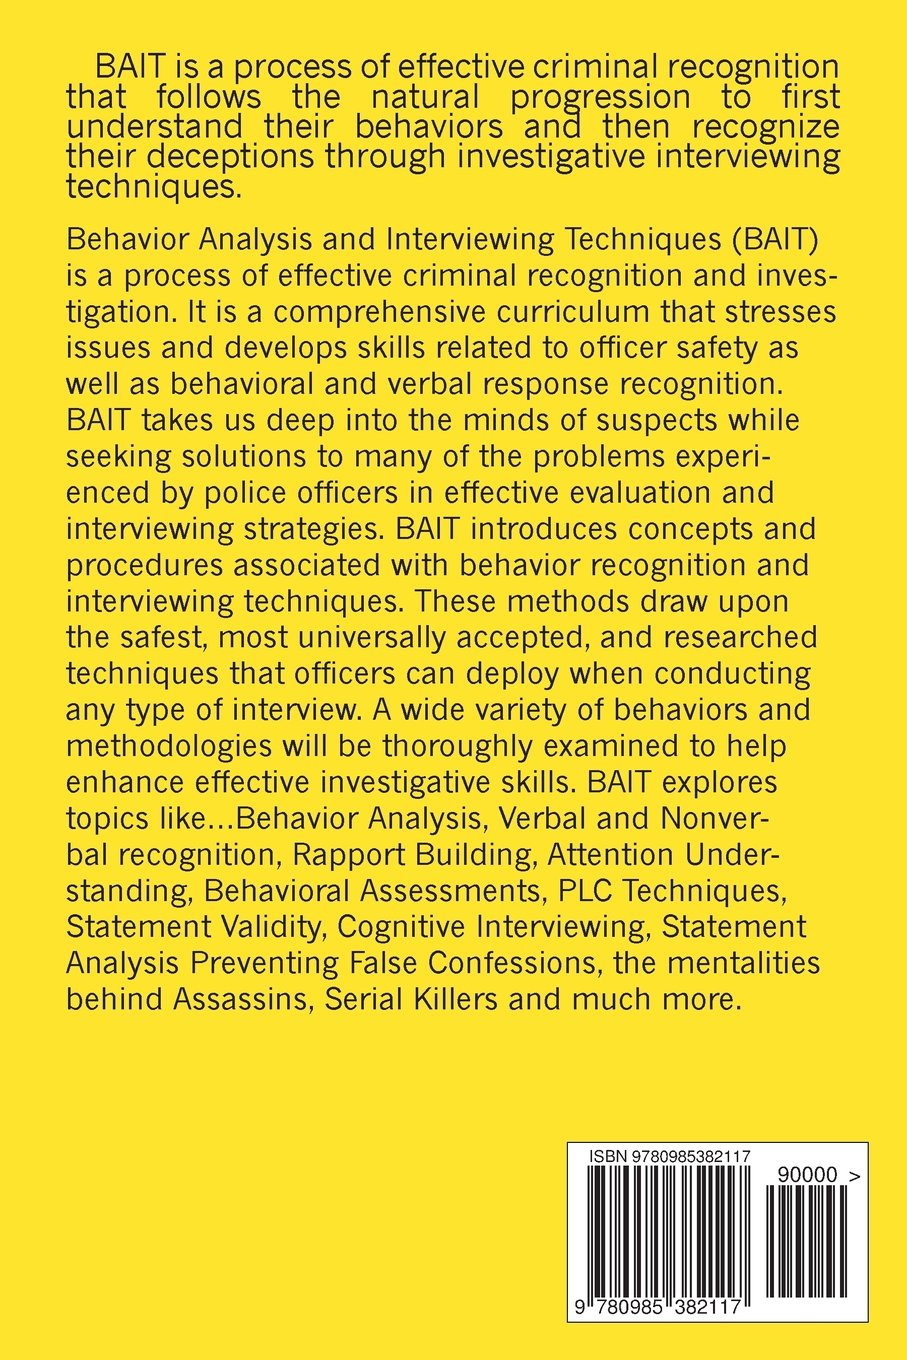 behavior analysis and interviewing techniques bait steven behavior analysis and interviewing techniques bait steven varnell 9780985382117 com books